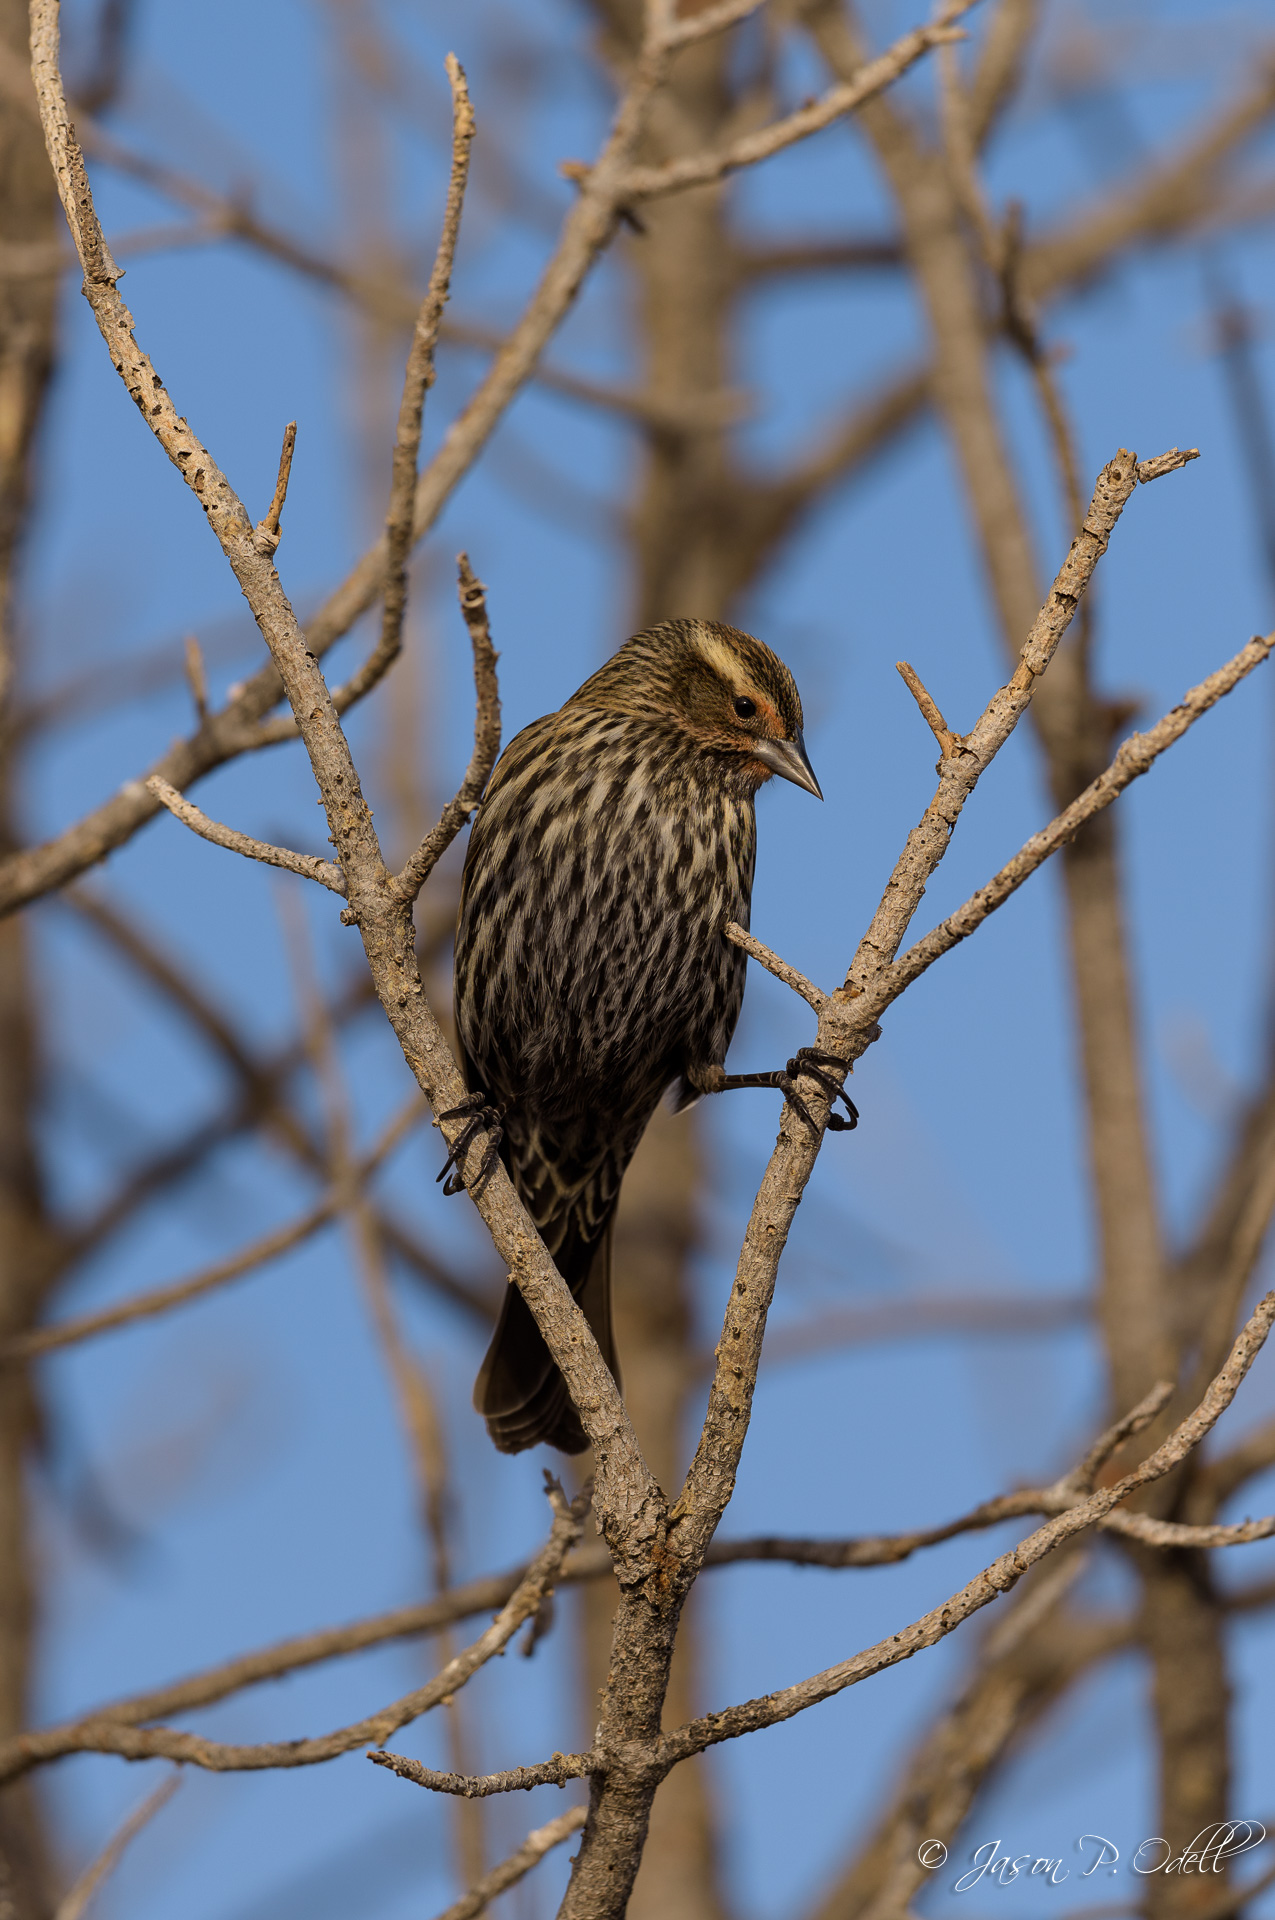 Female red-winged blackbird. Full-frame image, captured with 1.2x crop mode, 1/1600s @f/4.5